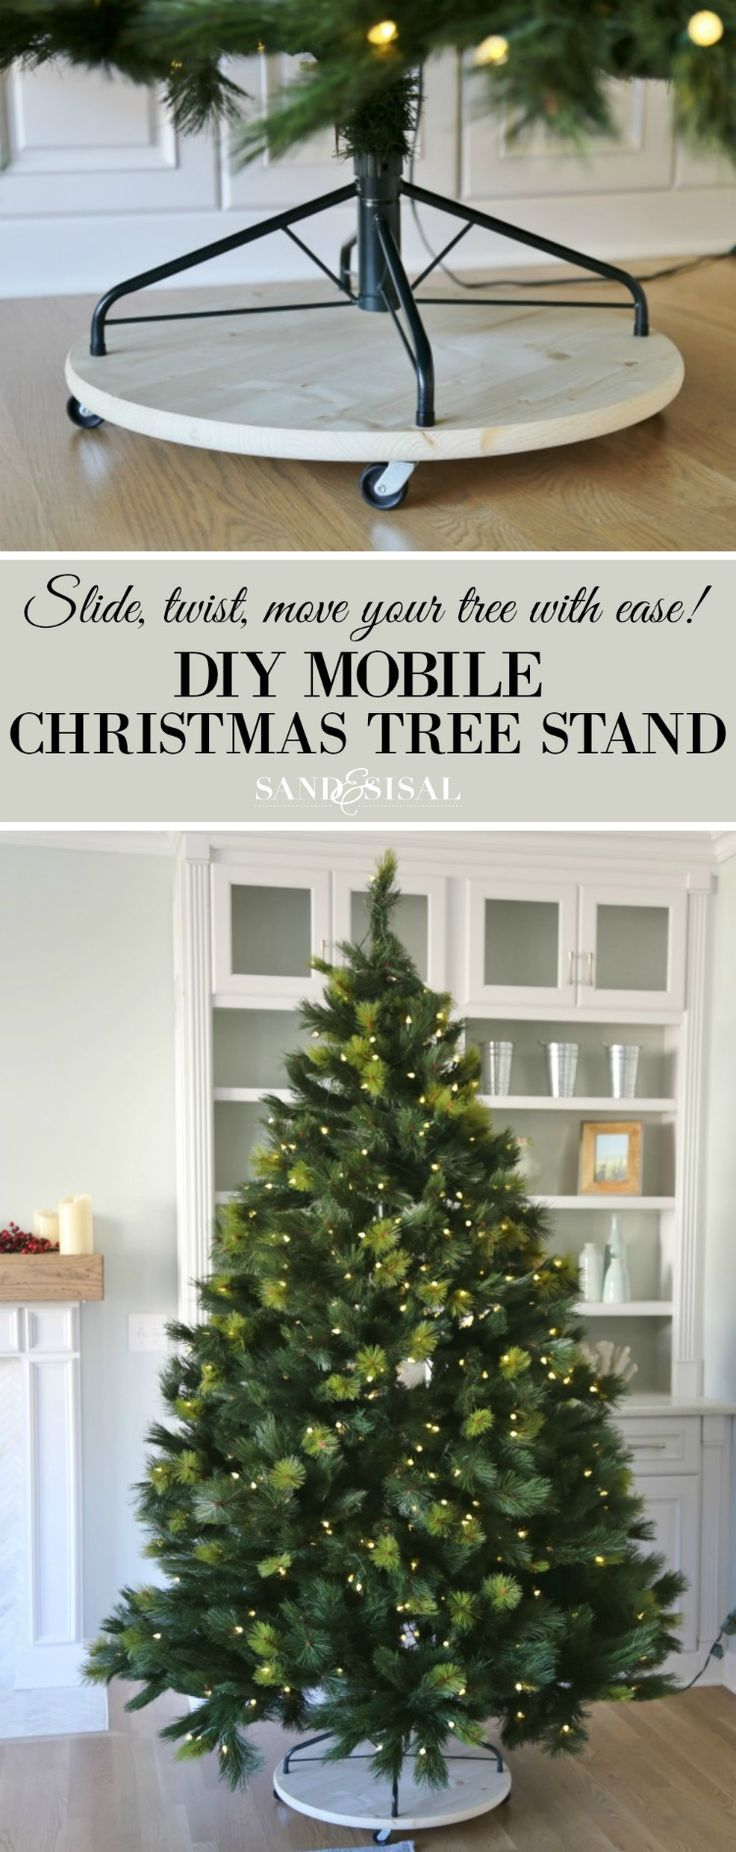 How to pack christmas ornaments for moving - Diy Mobile Christmas Tree Stand